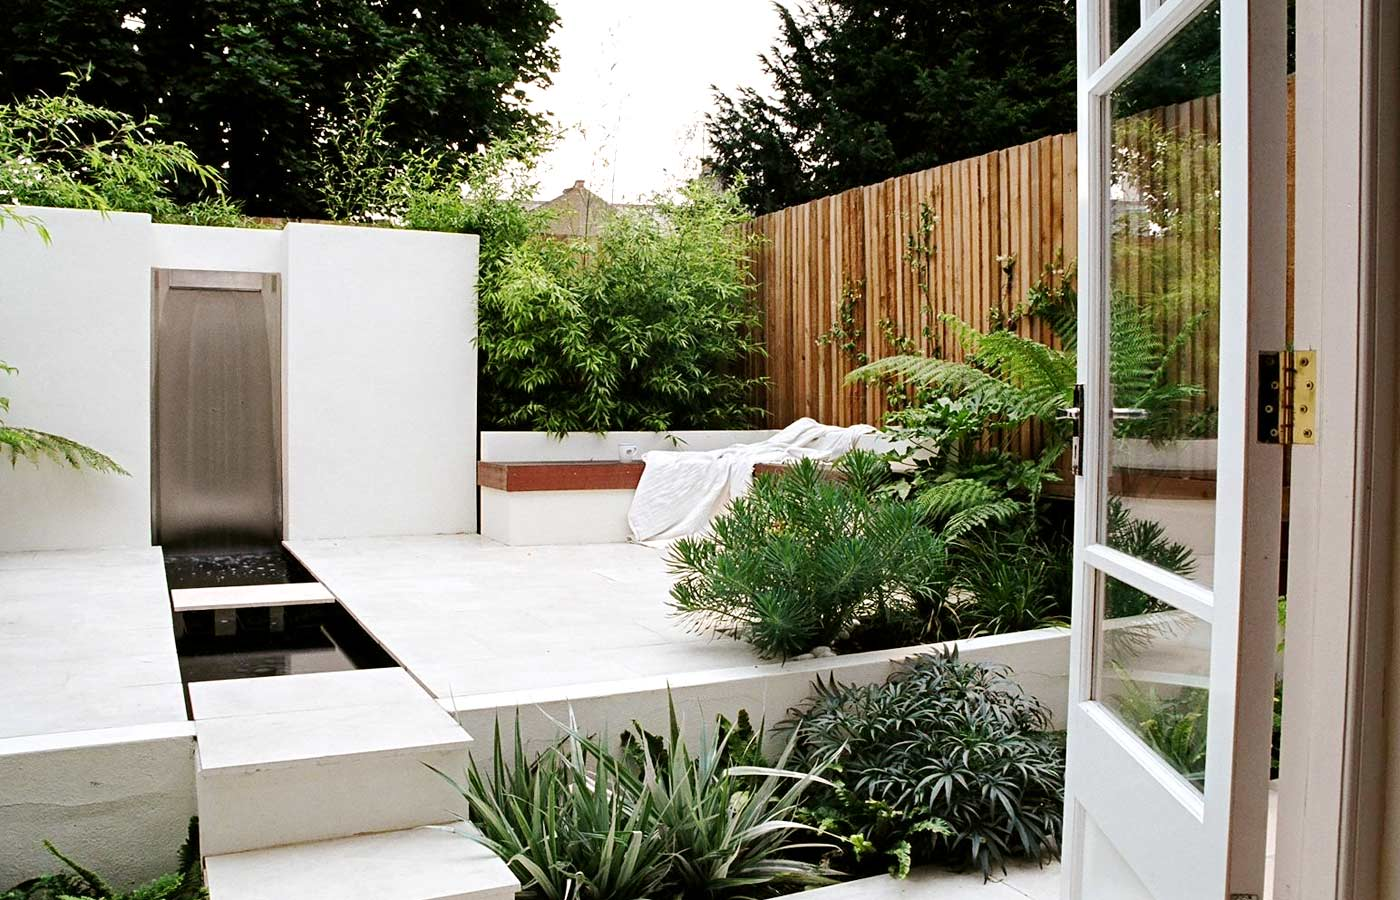 Small urban garden design garden design st albans for Urban garden design ideas